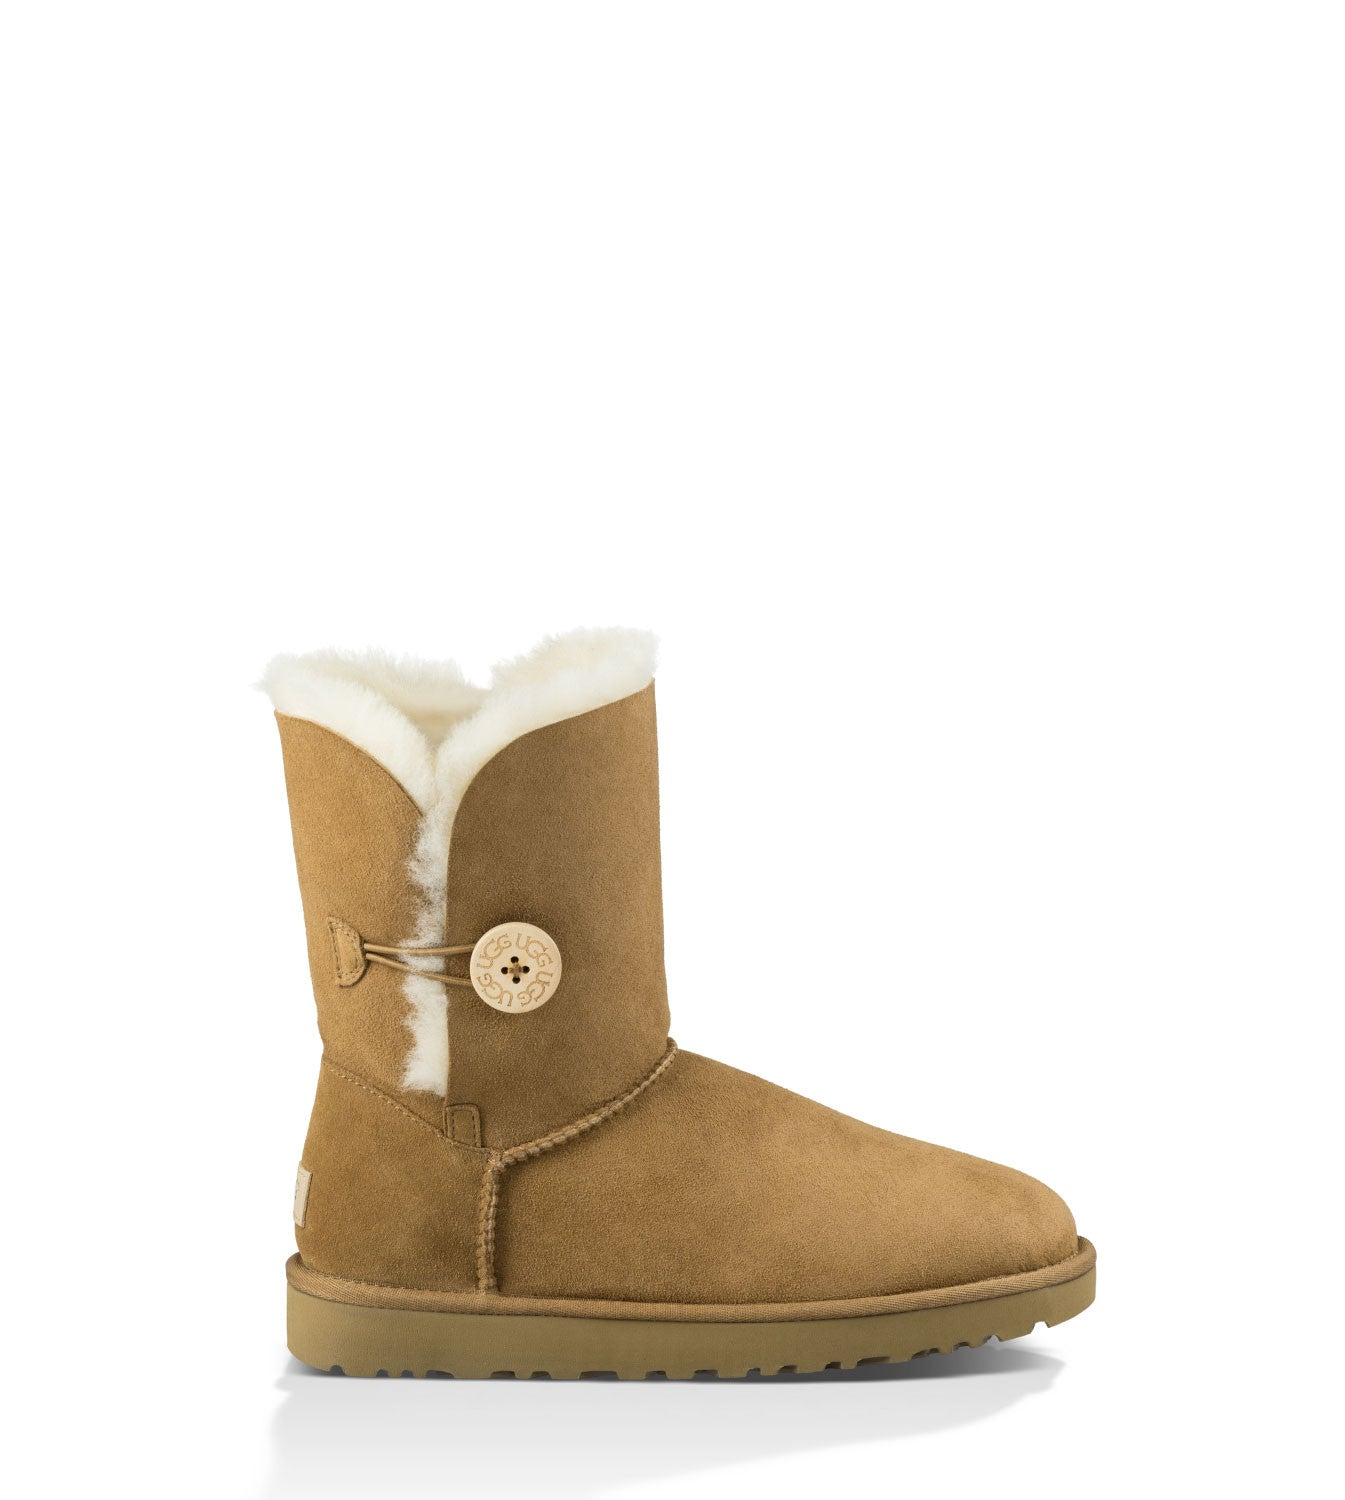 UGG Australia Women's Bailey Button II in Chestnut